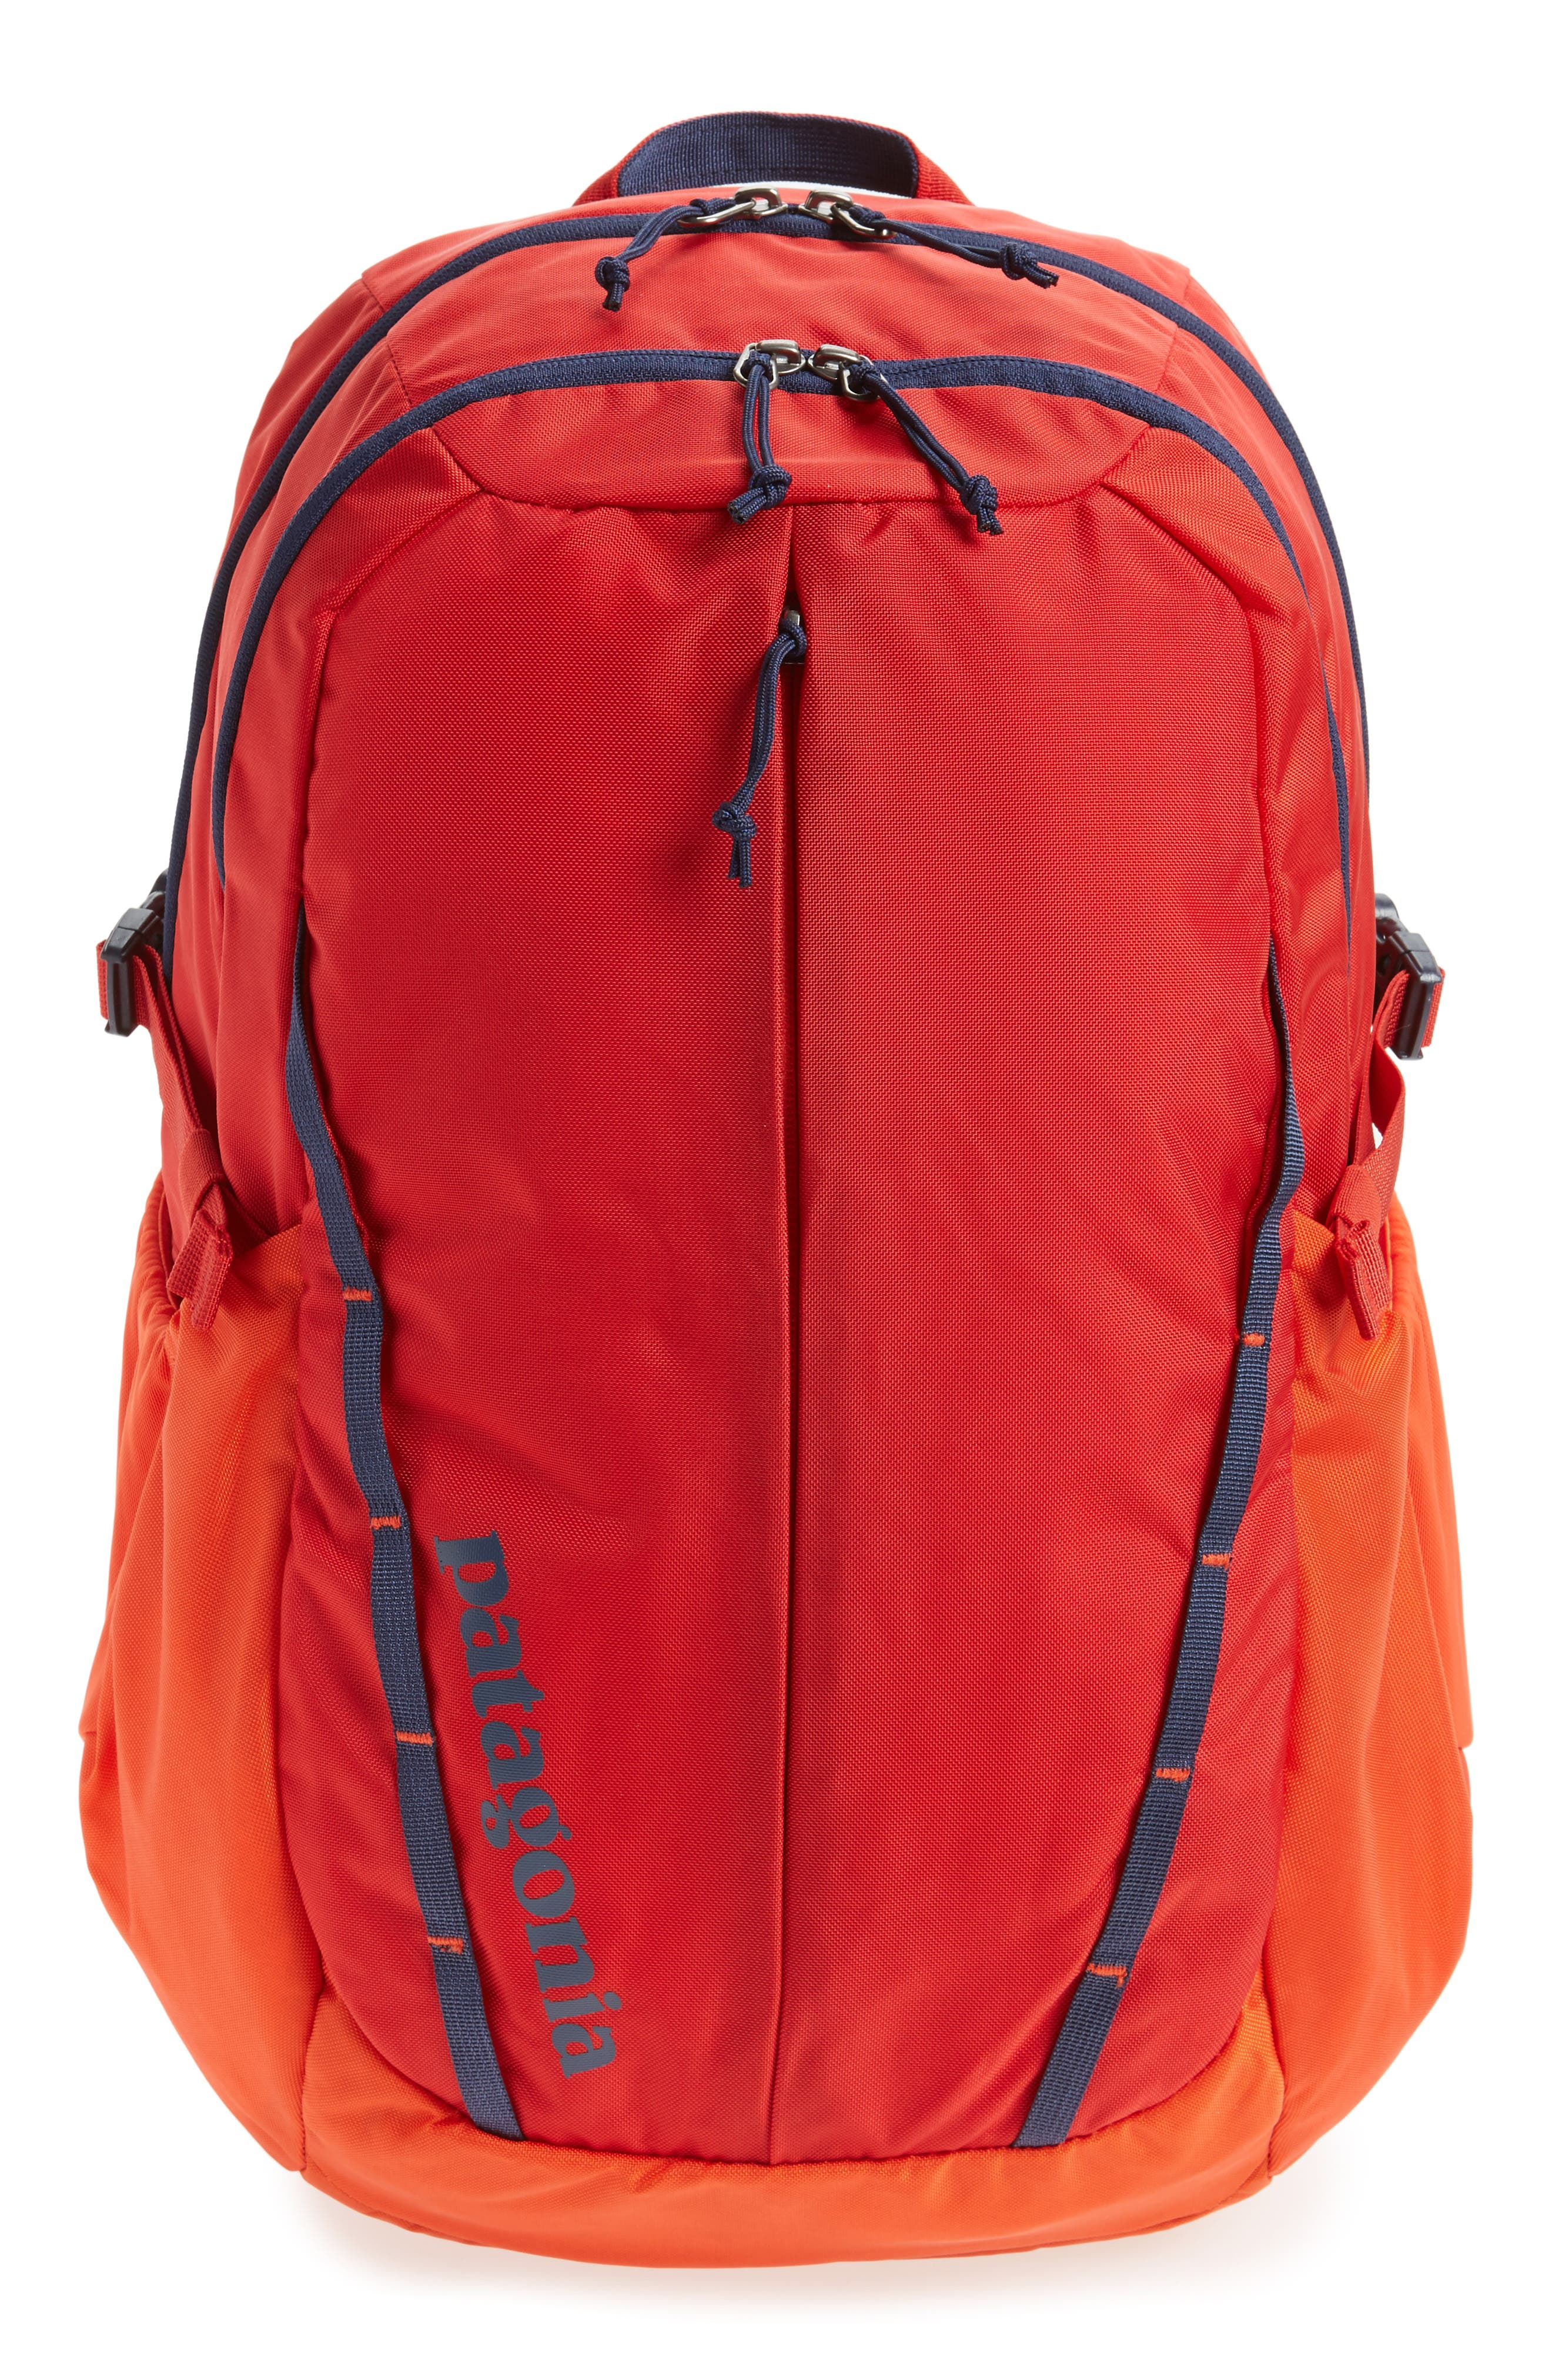 28L Refugio Backpack,                             Main thumbnail 1, color,                             Paintbrush Red